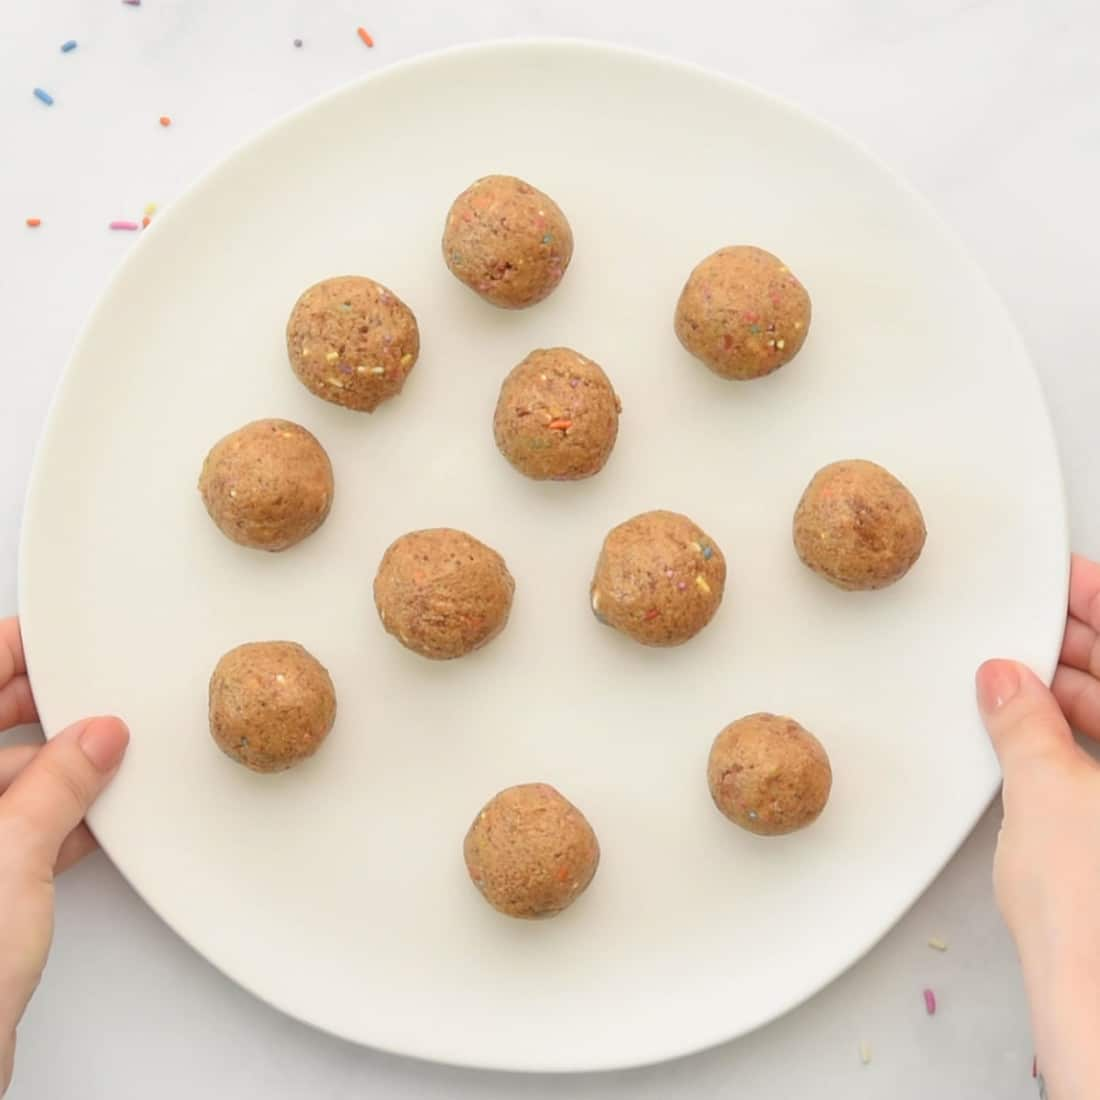 rolled balls with sprinkles on a plate